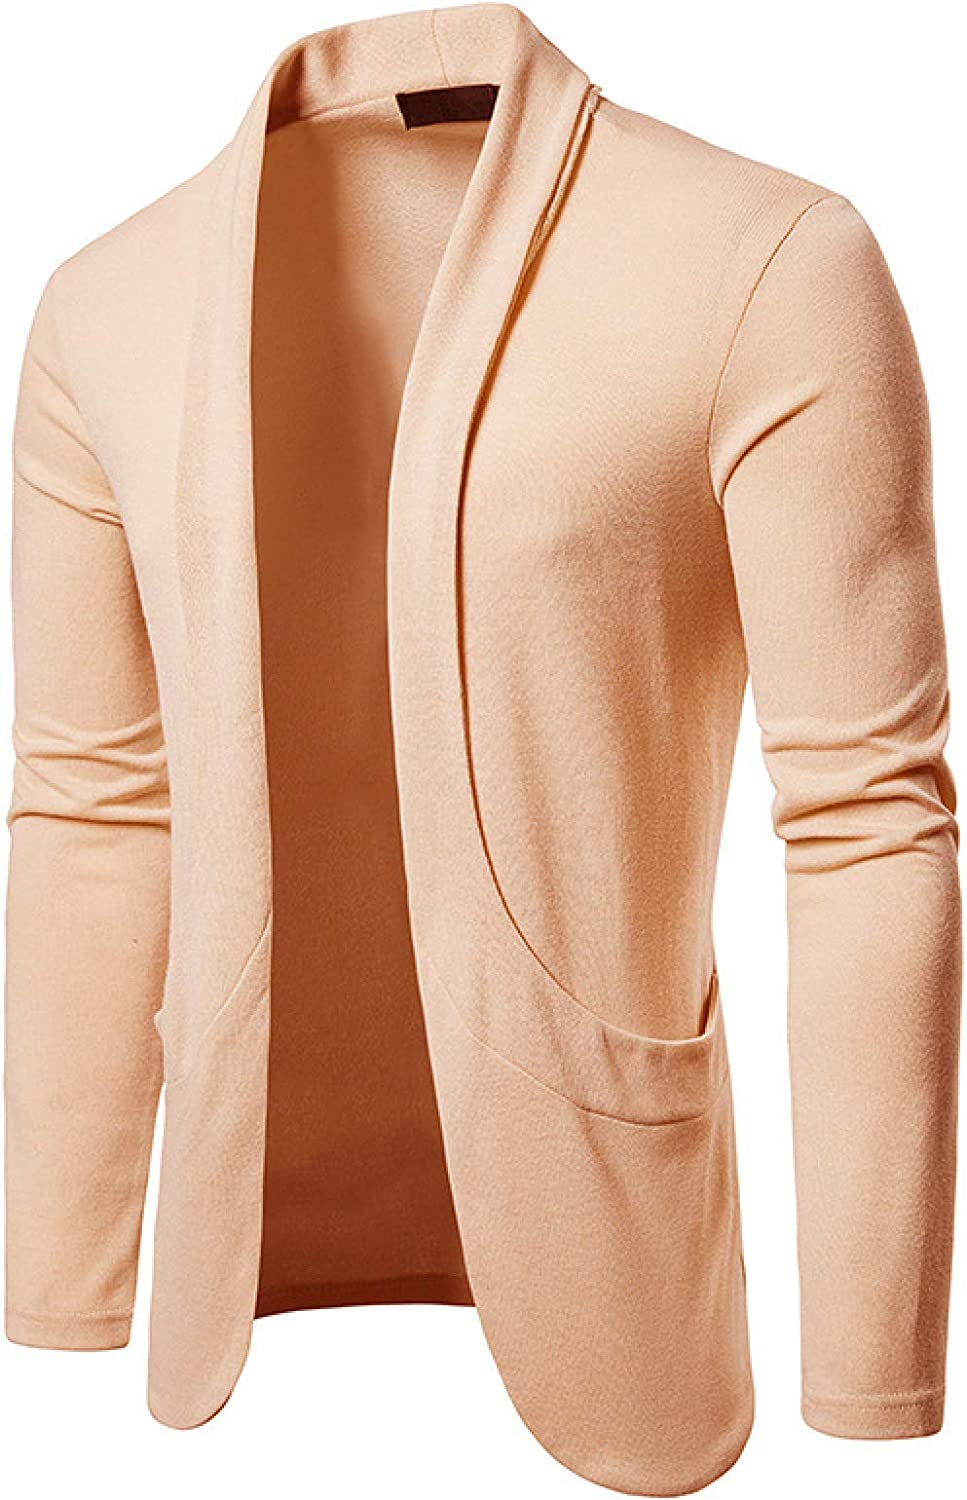 Autumn and Winter Men's Solid Color Cardigan Sweaters Slim Fashion Business